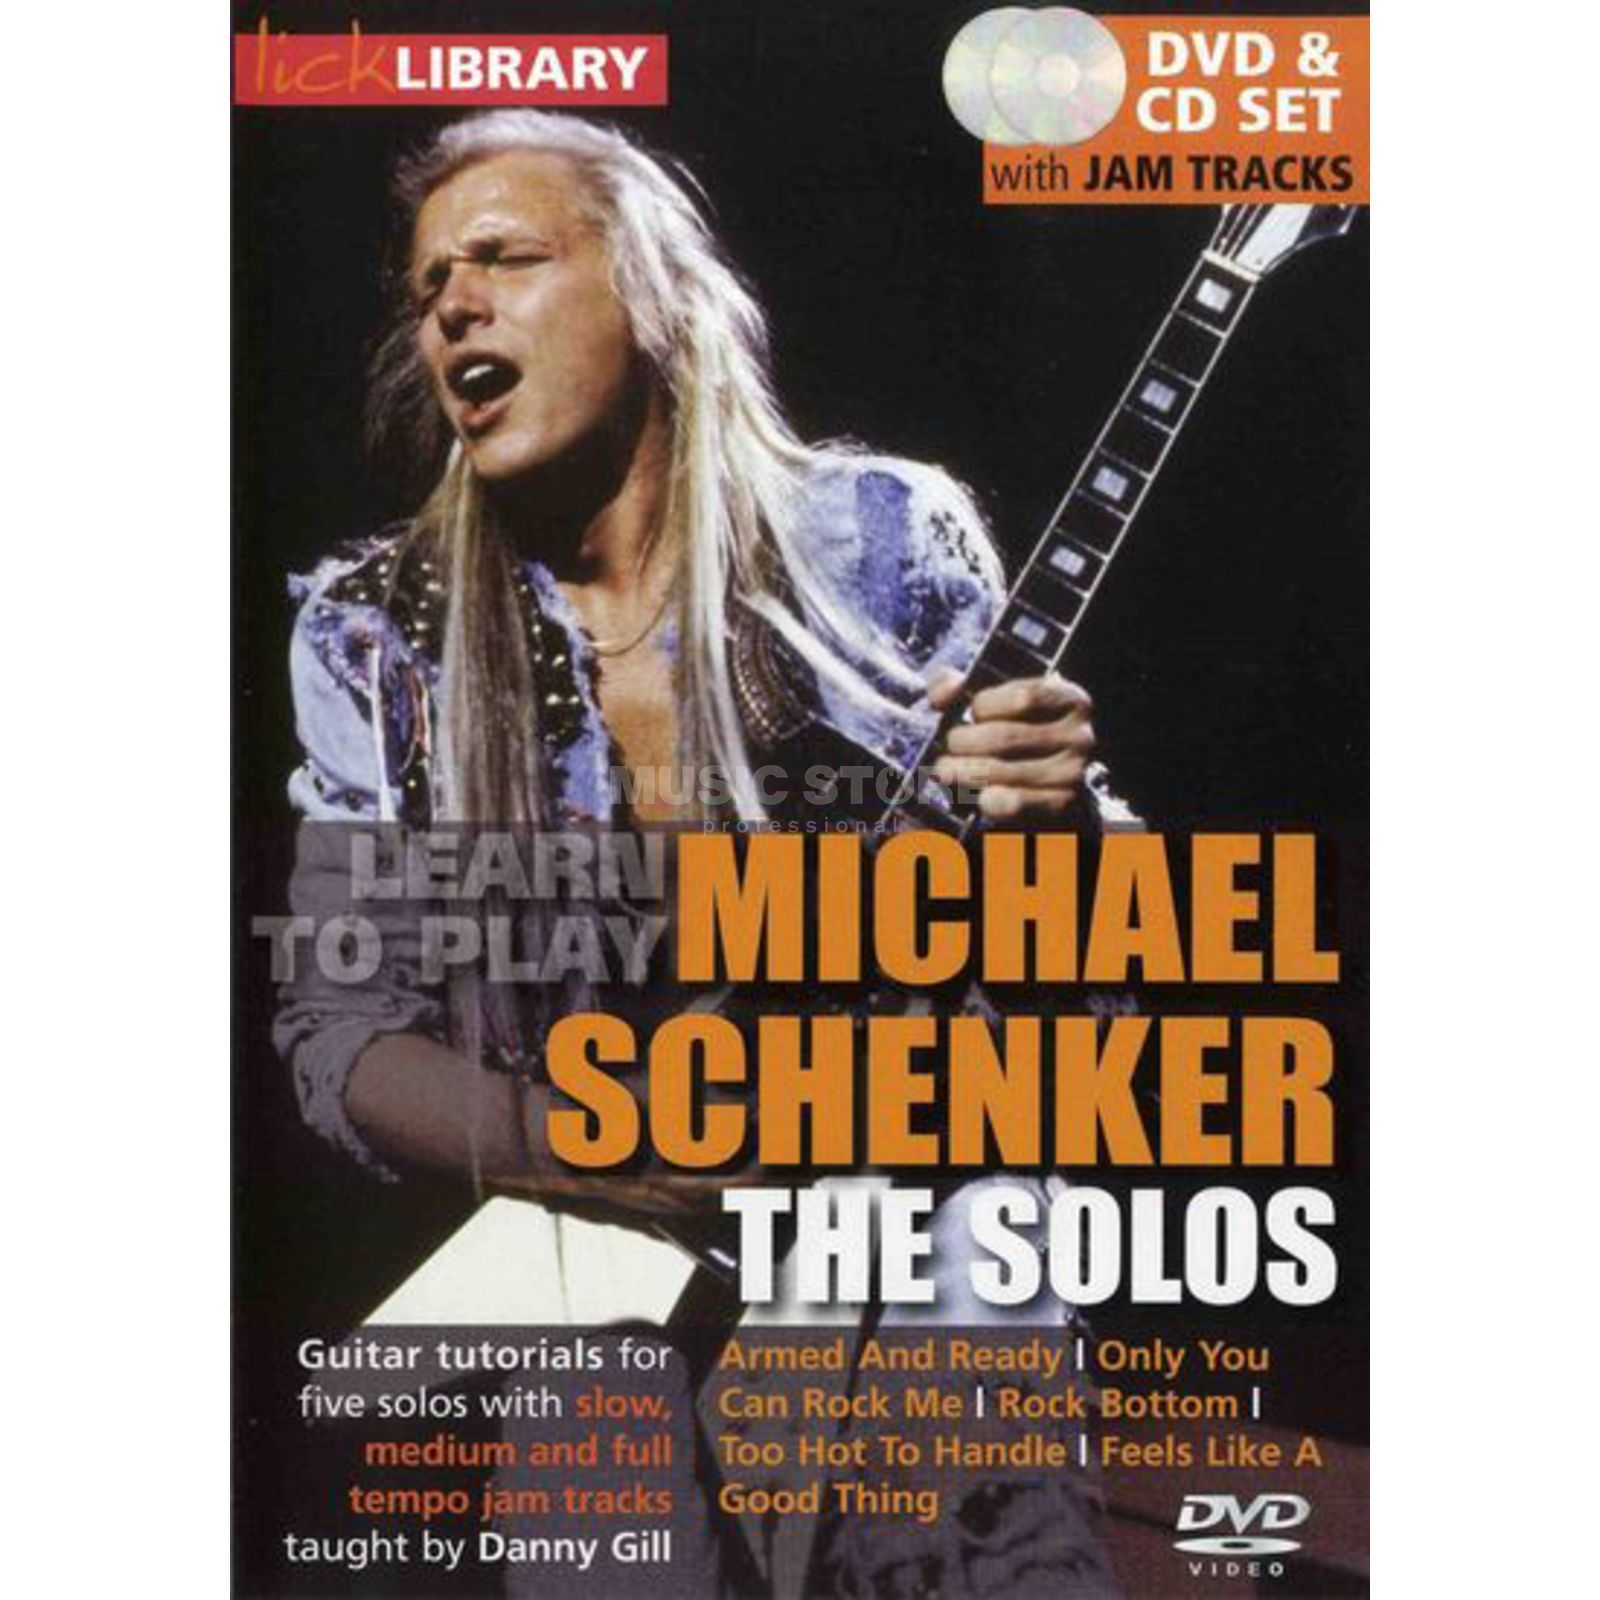 Roadrock International Lick Library: Learn To Play Michael Schenker - The Solos DVD Produktbillede